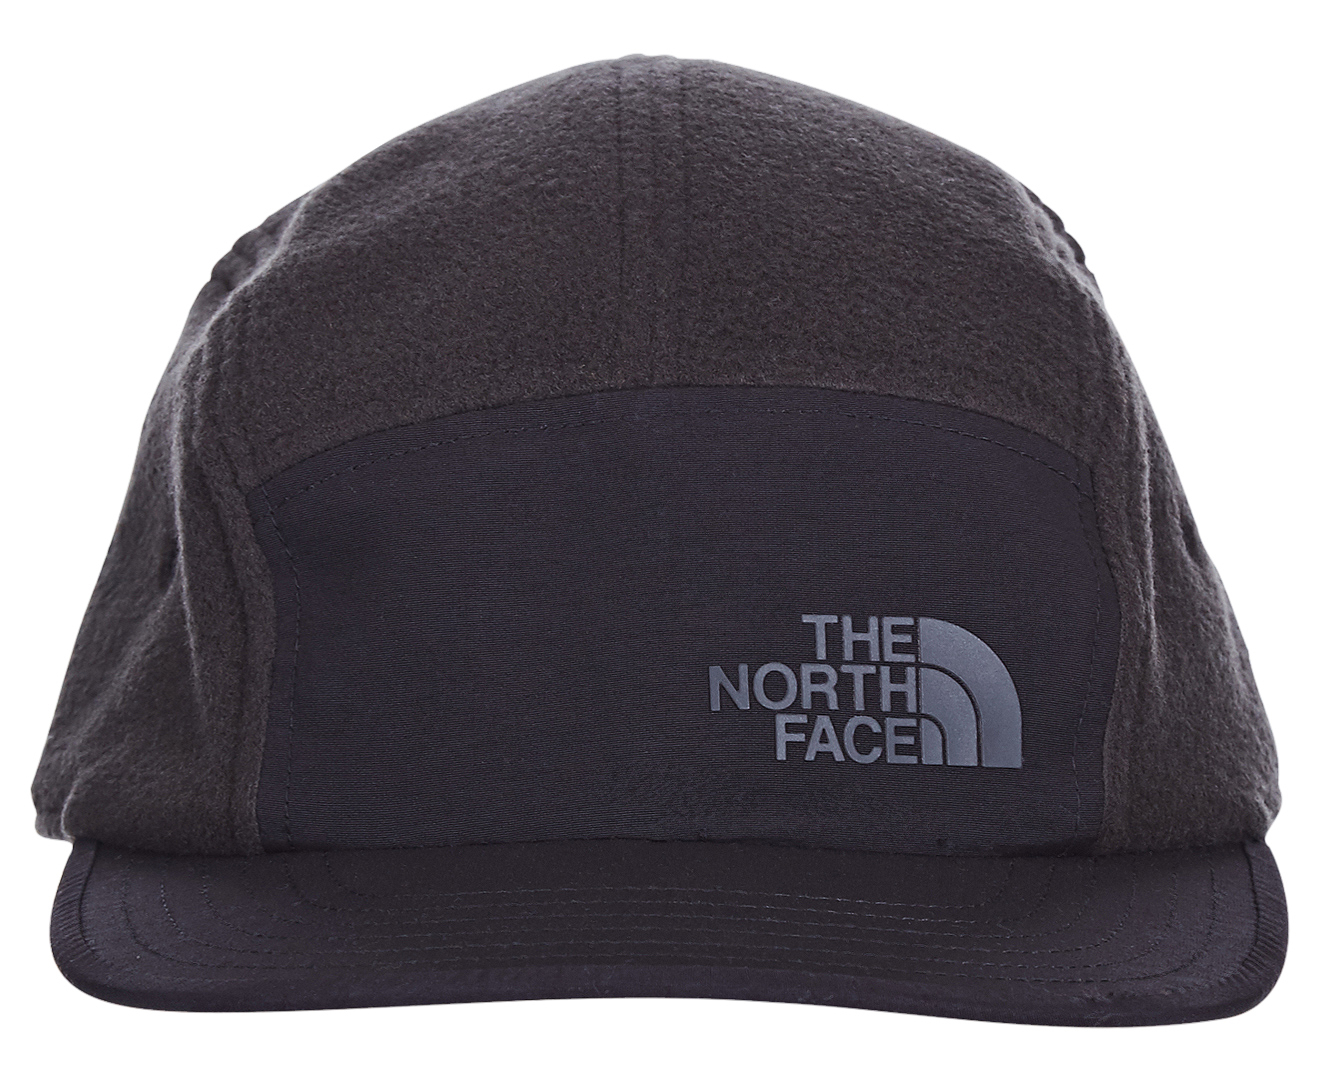 162b389168c The North Face Denali Five Panel Cap - Black